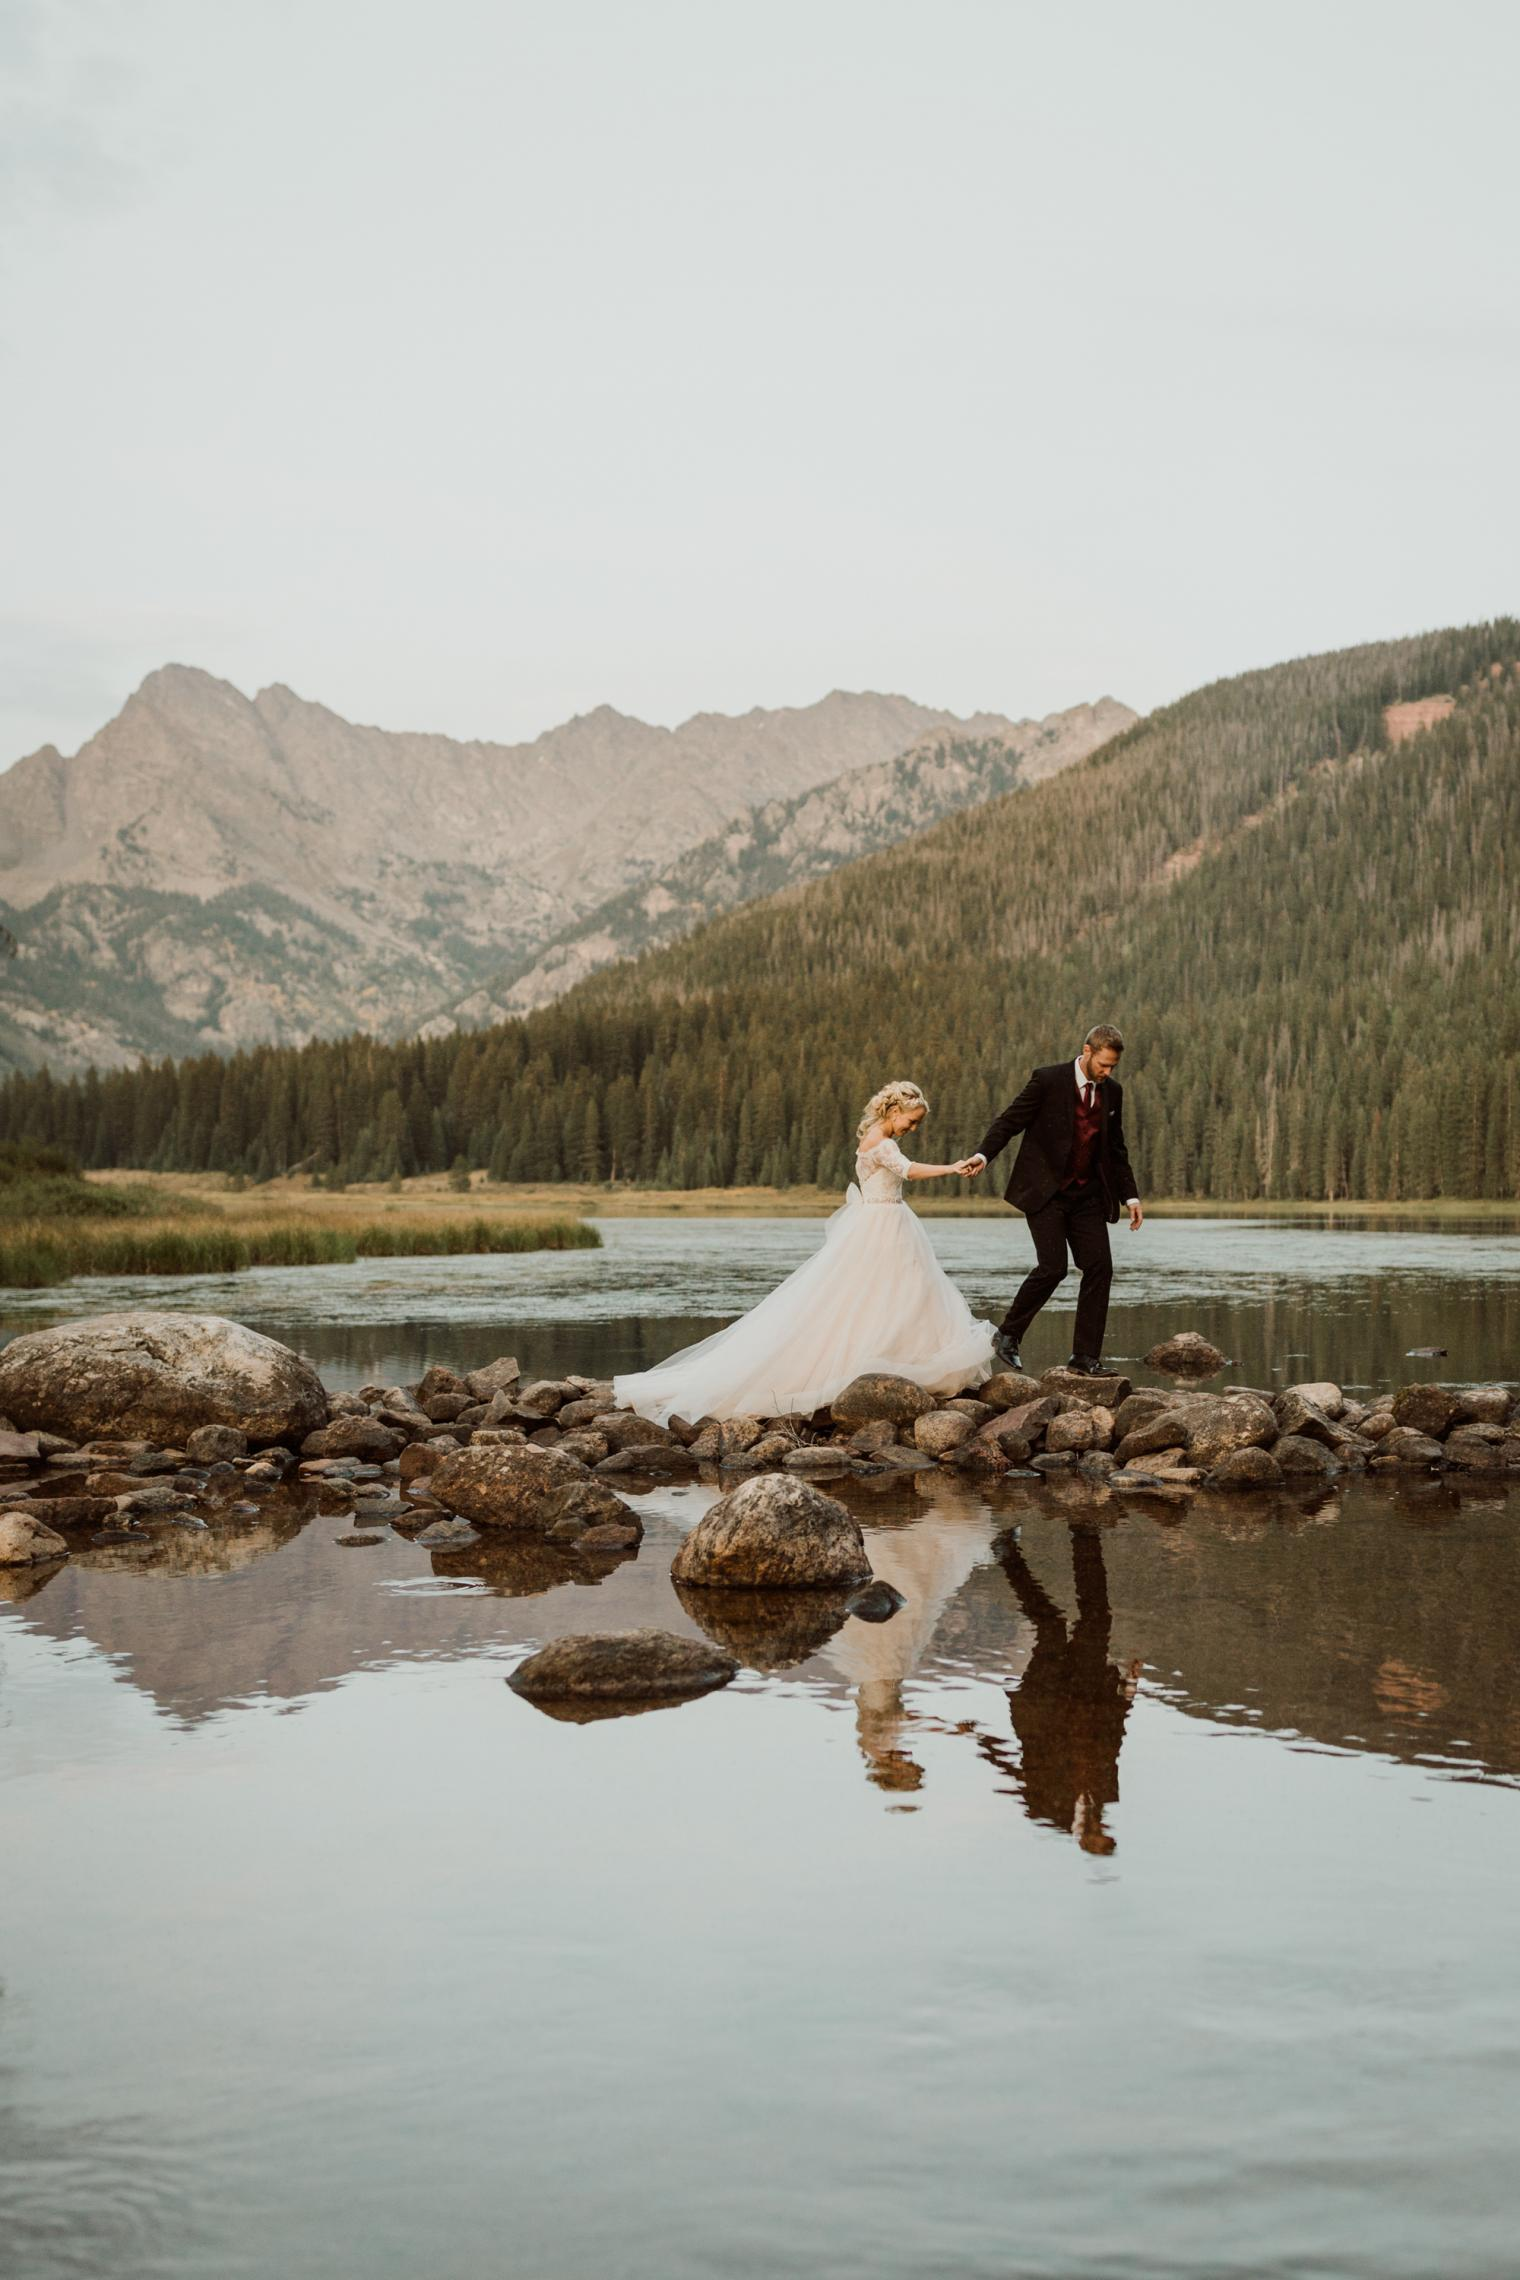 The Most Breathtaking Wedding Venues In Colorado - Stunning-art-deco-with-spectacular-river-and-city-views